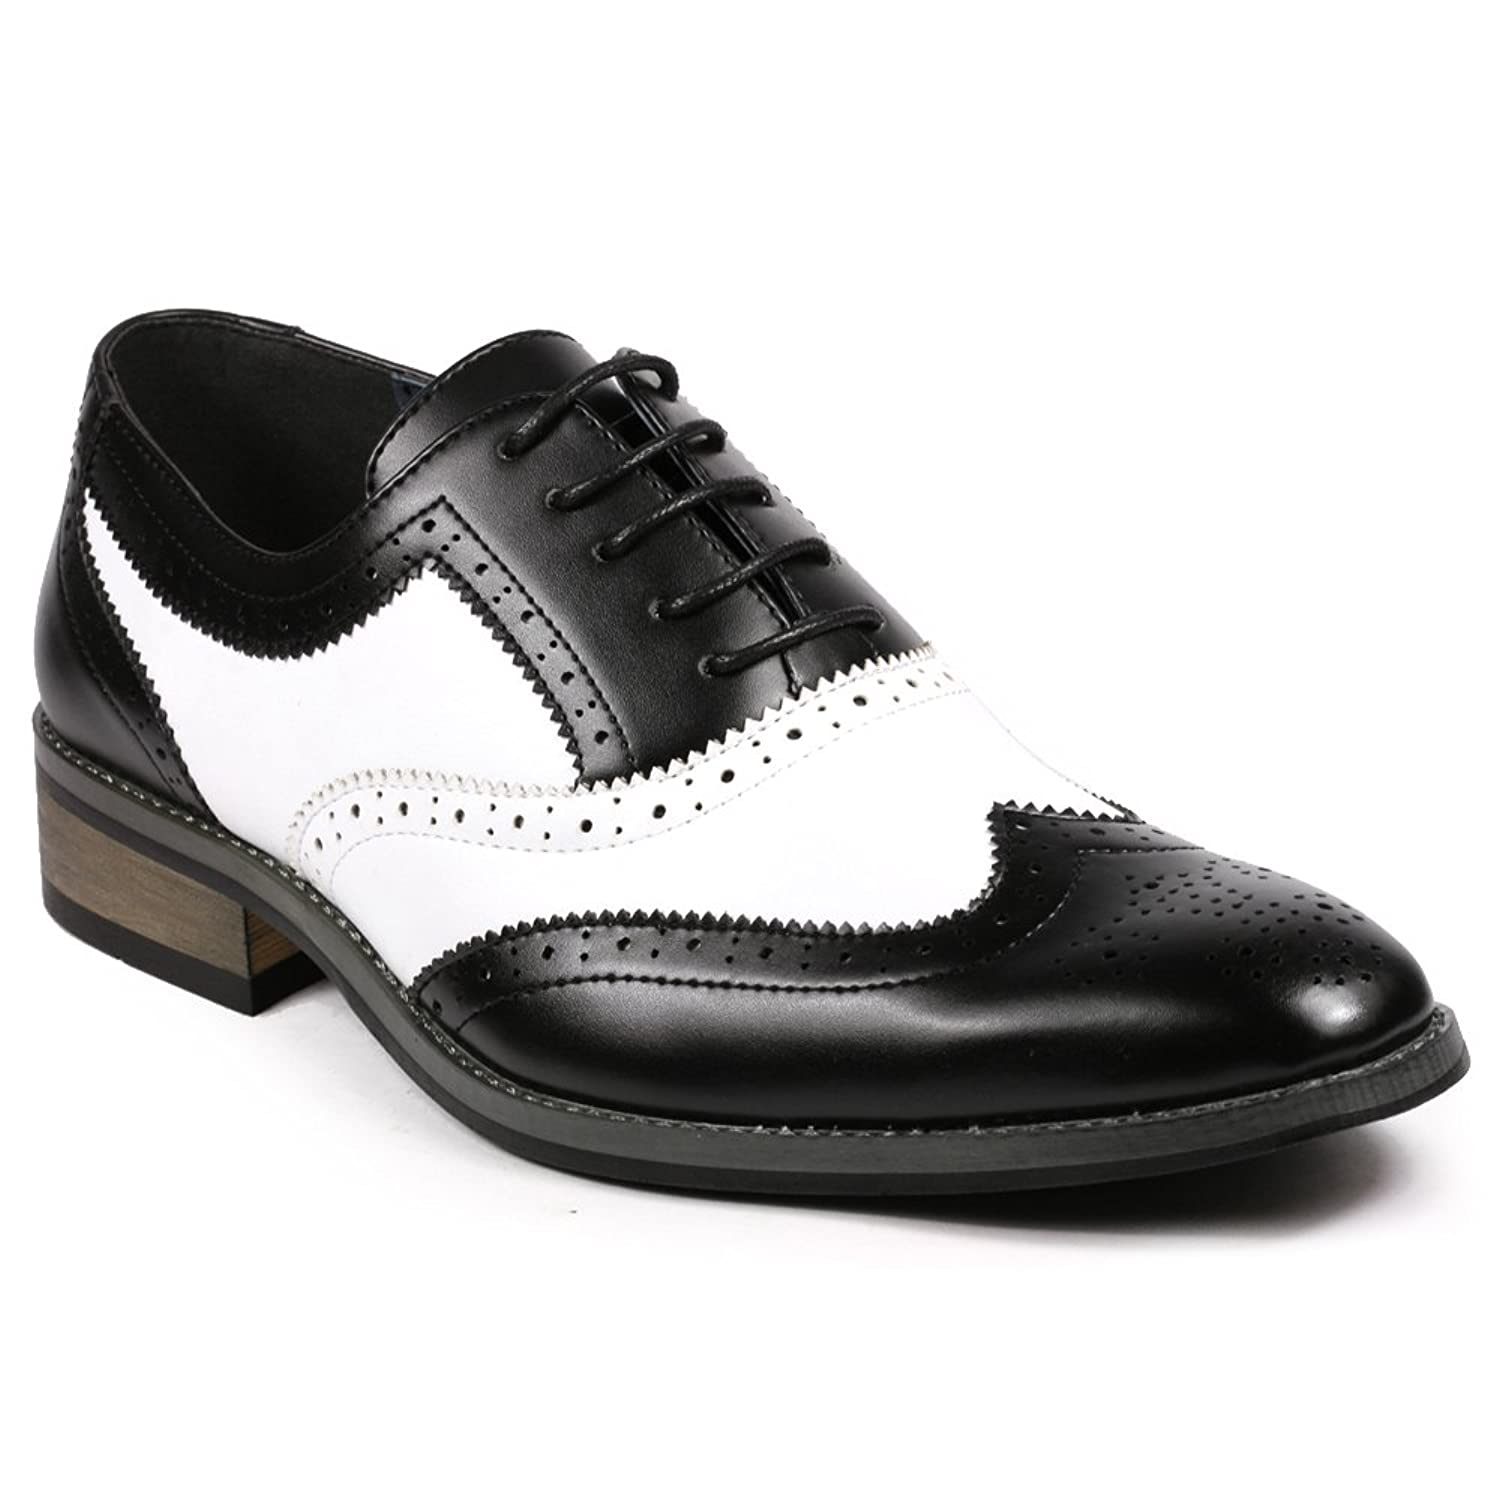 1950s Style Mens Shoes UV Signature PA002 Mens Two Tone Perforated Wing Tip Lace Up Oxford Dress Shoes $44.99 AT vintagedancer.com